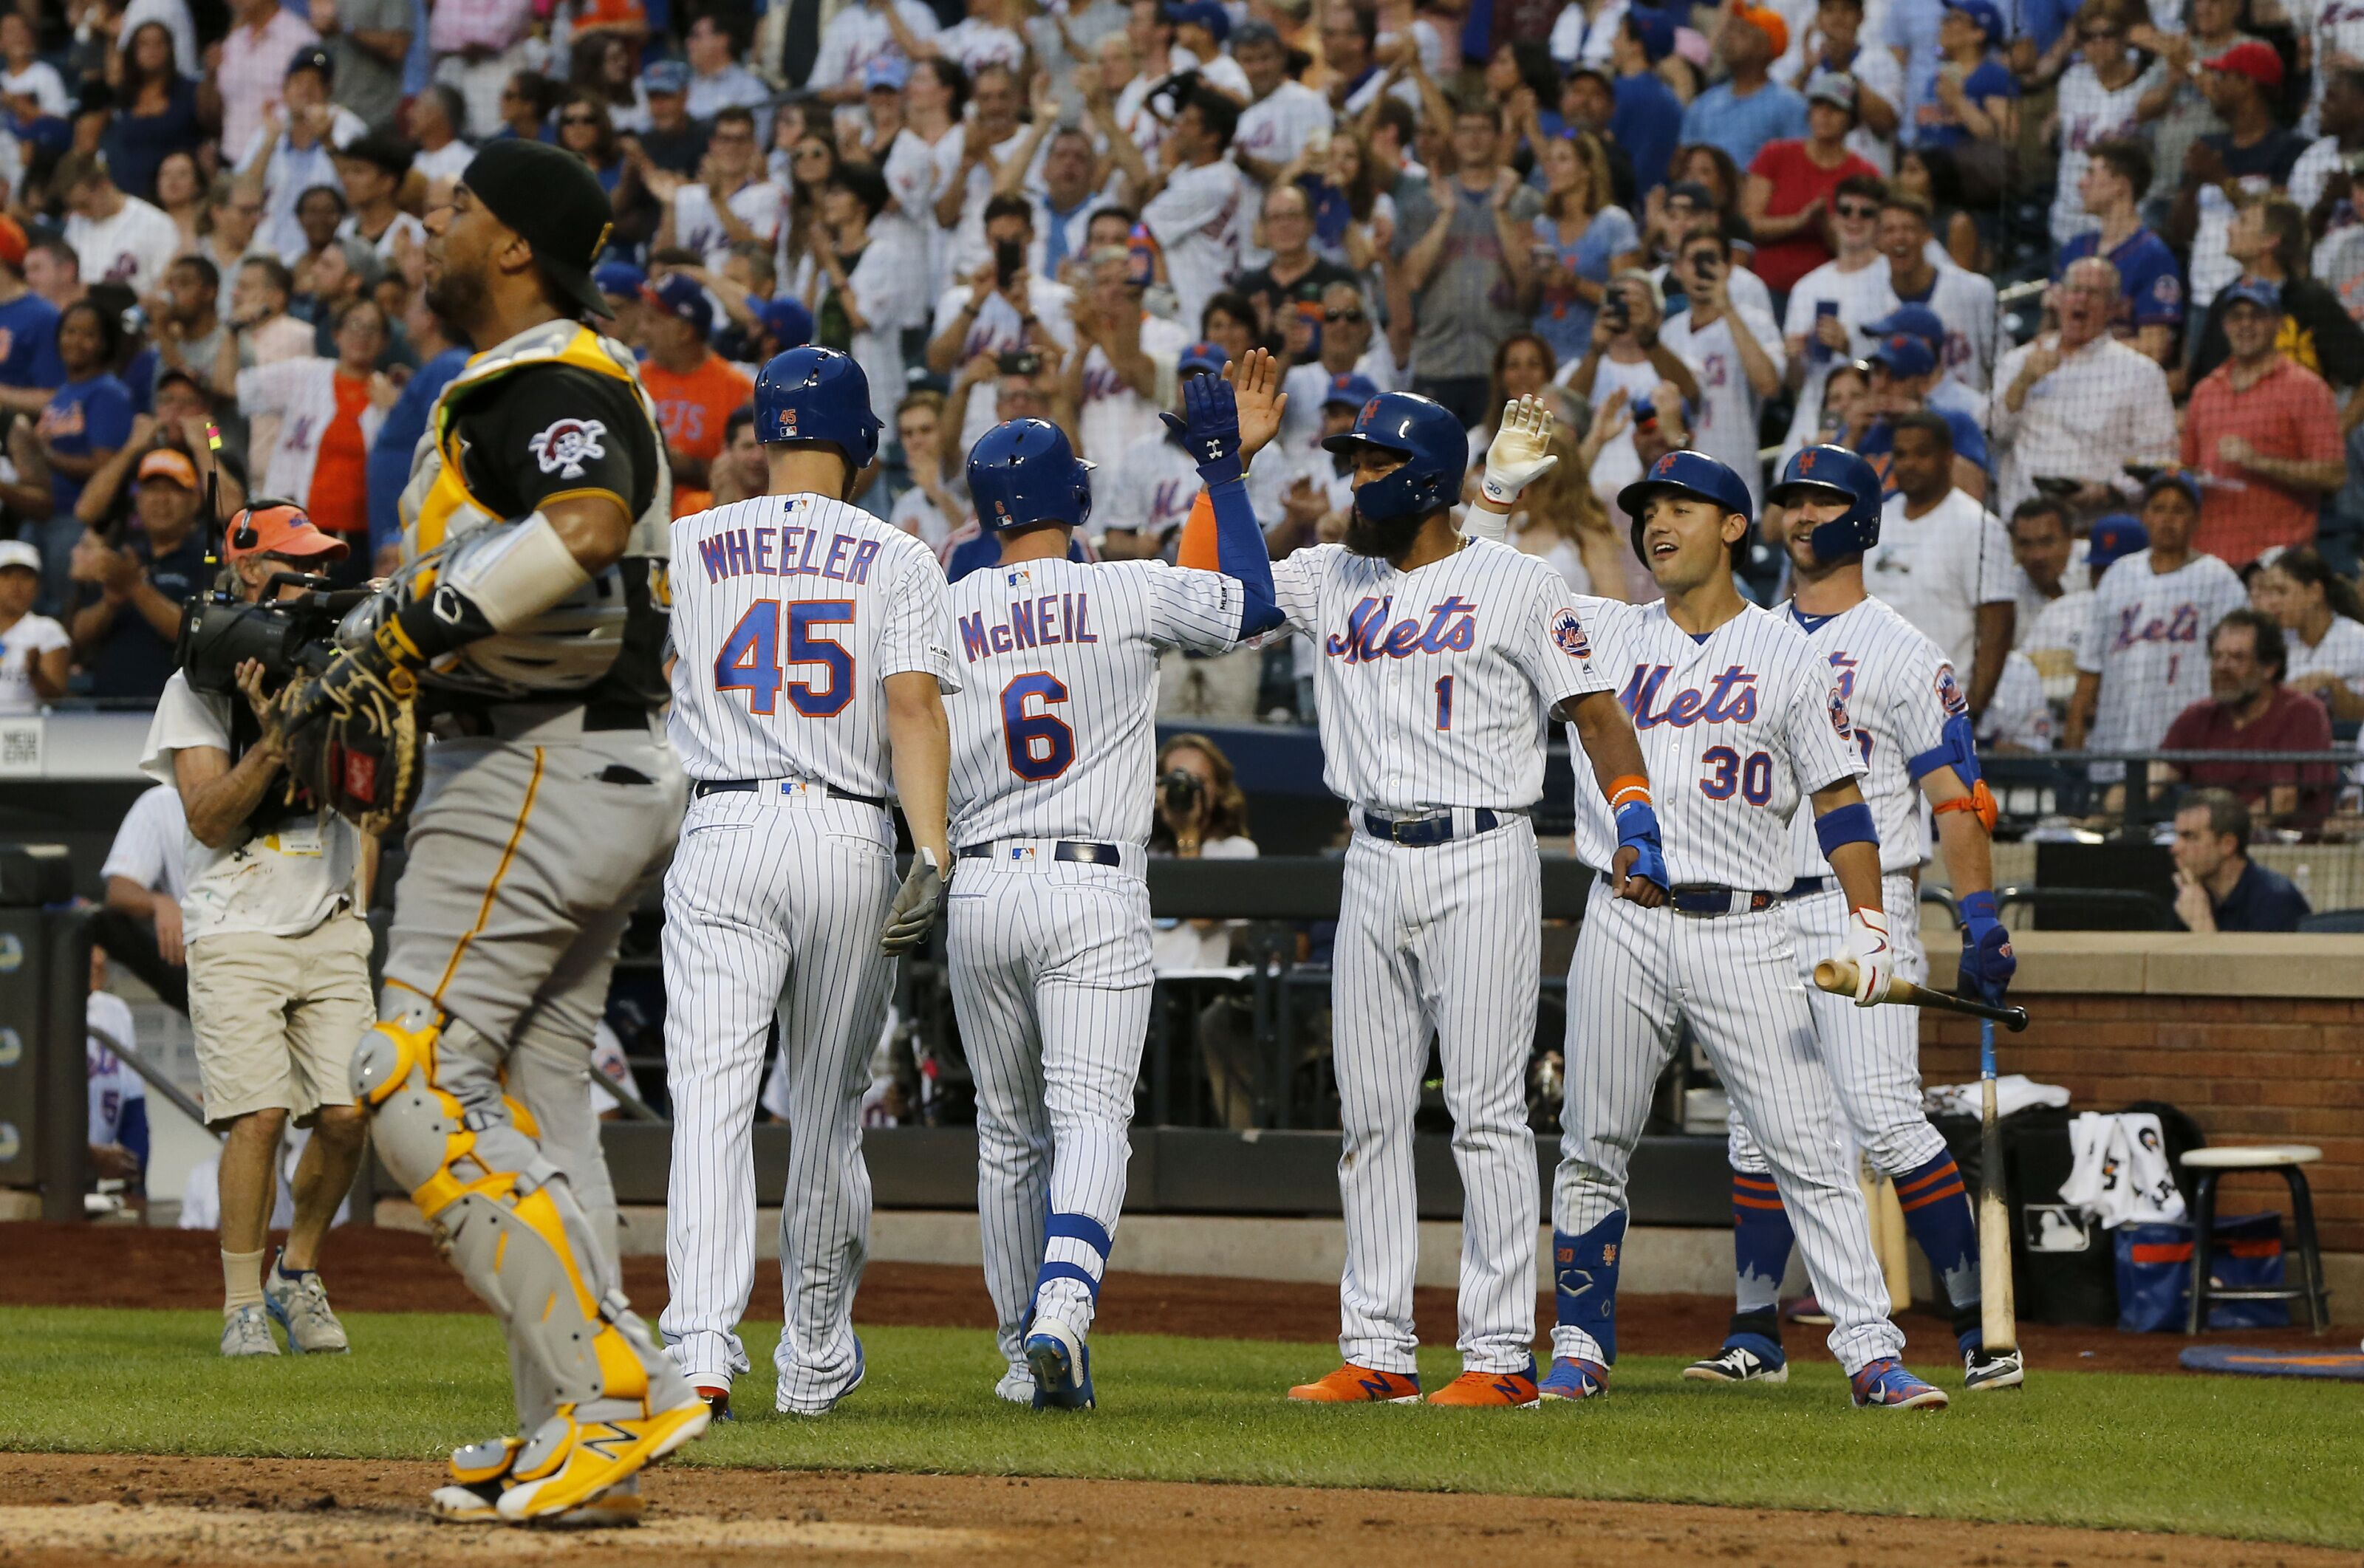 New York Mets fans signed up for this, and they fight to the end